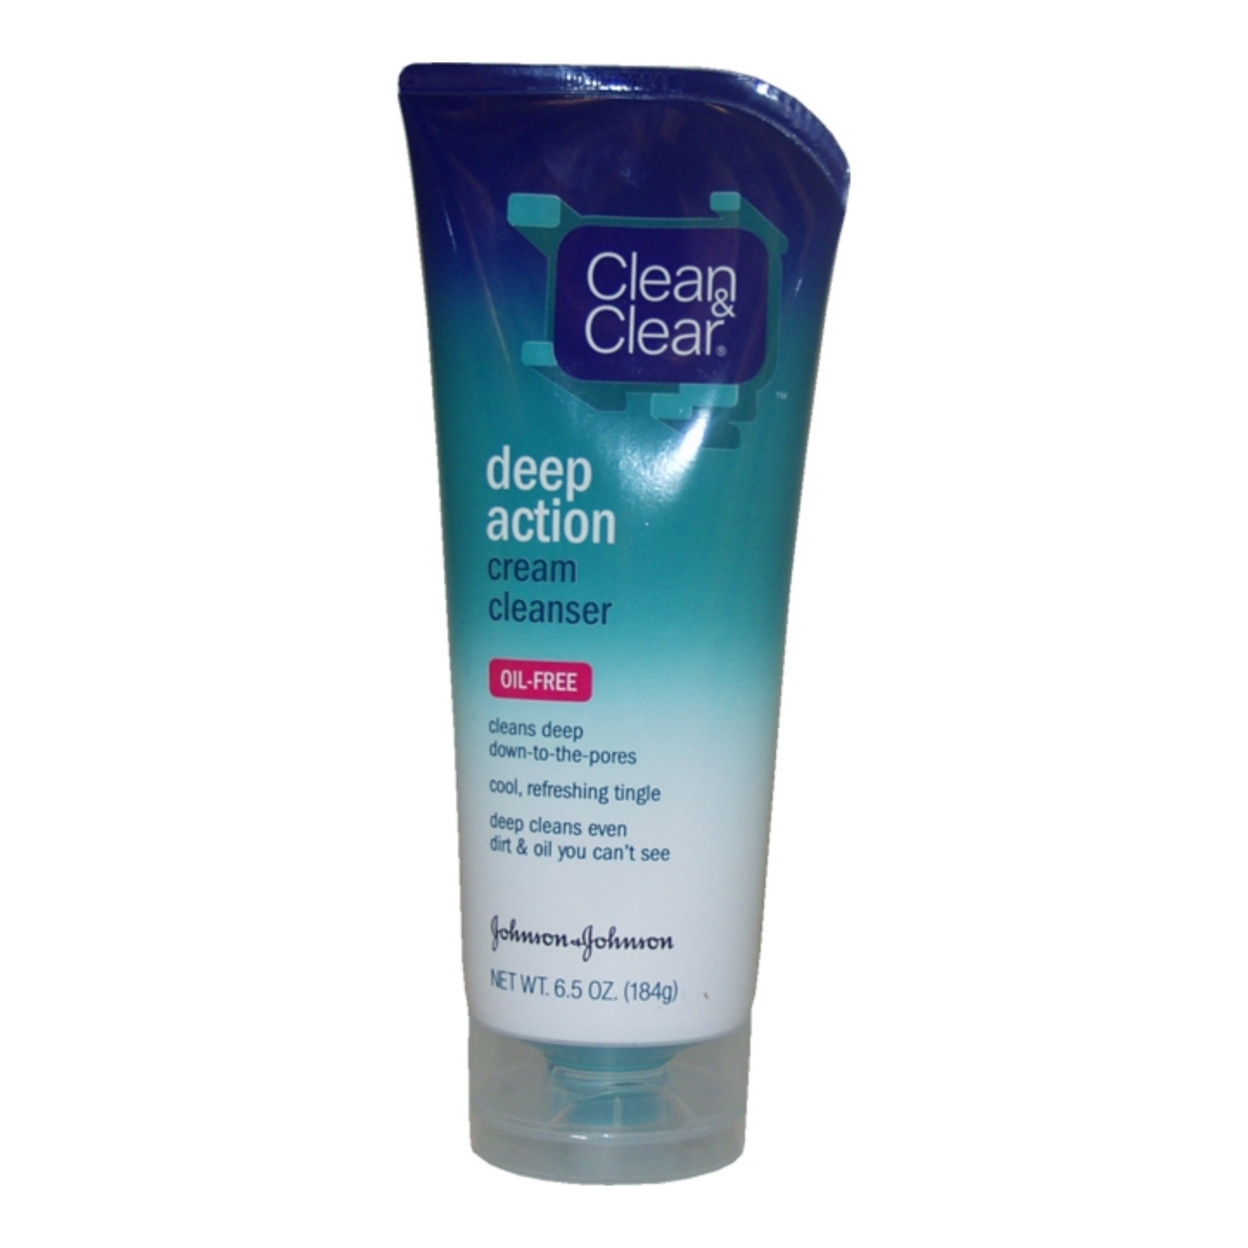 Oil Free Deep Action Cream Cleanser by Clean & Clear for Unisex - 6.5 oz Cleanser 5898e199c98fc4508f3b677f